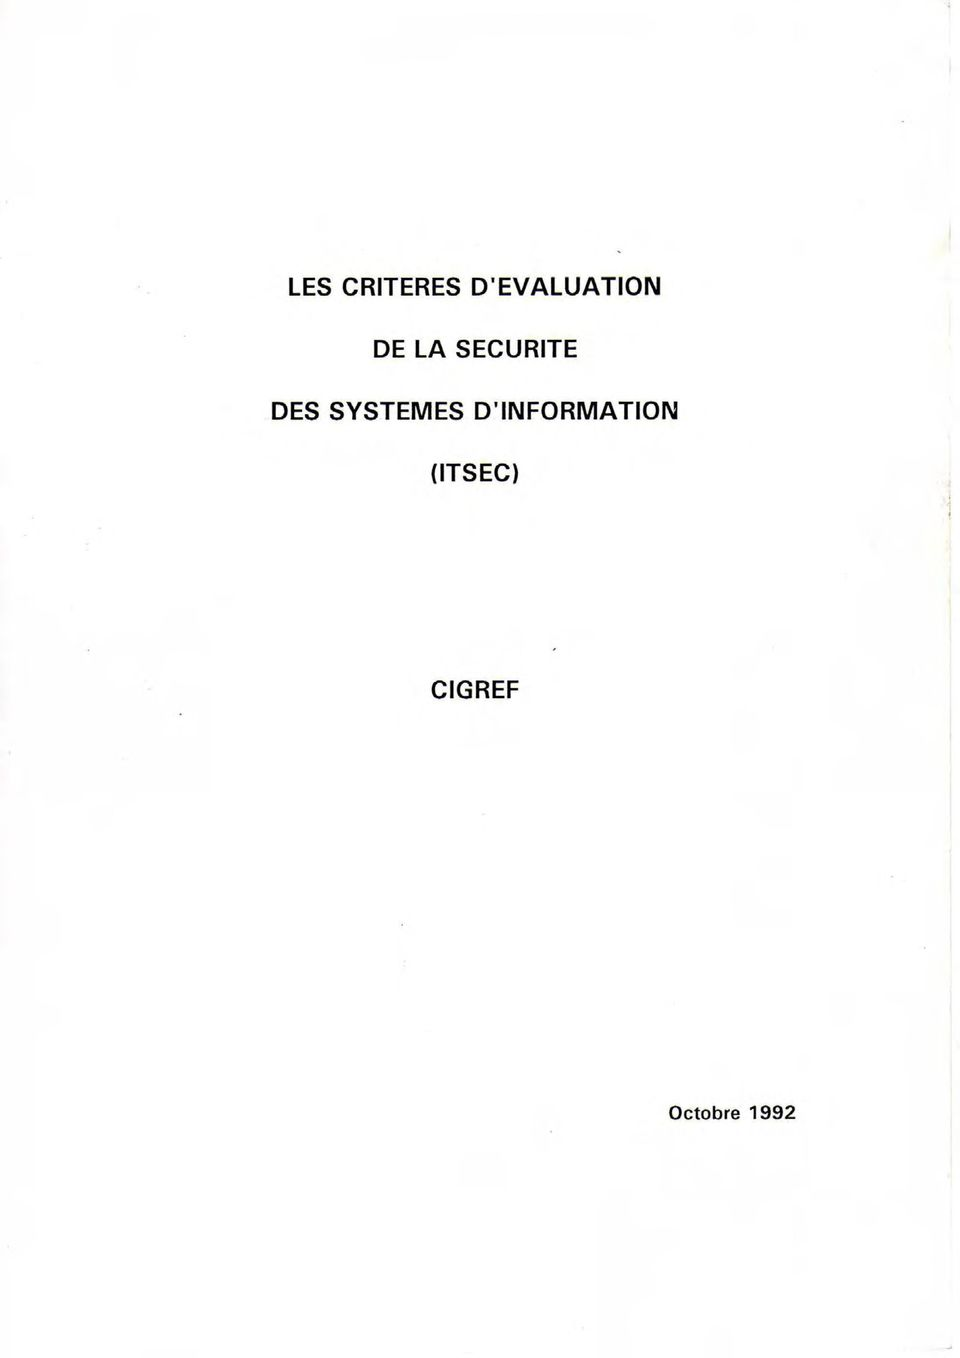 SECURITE DES SYSTEMES